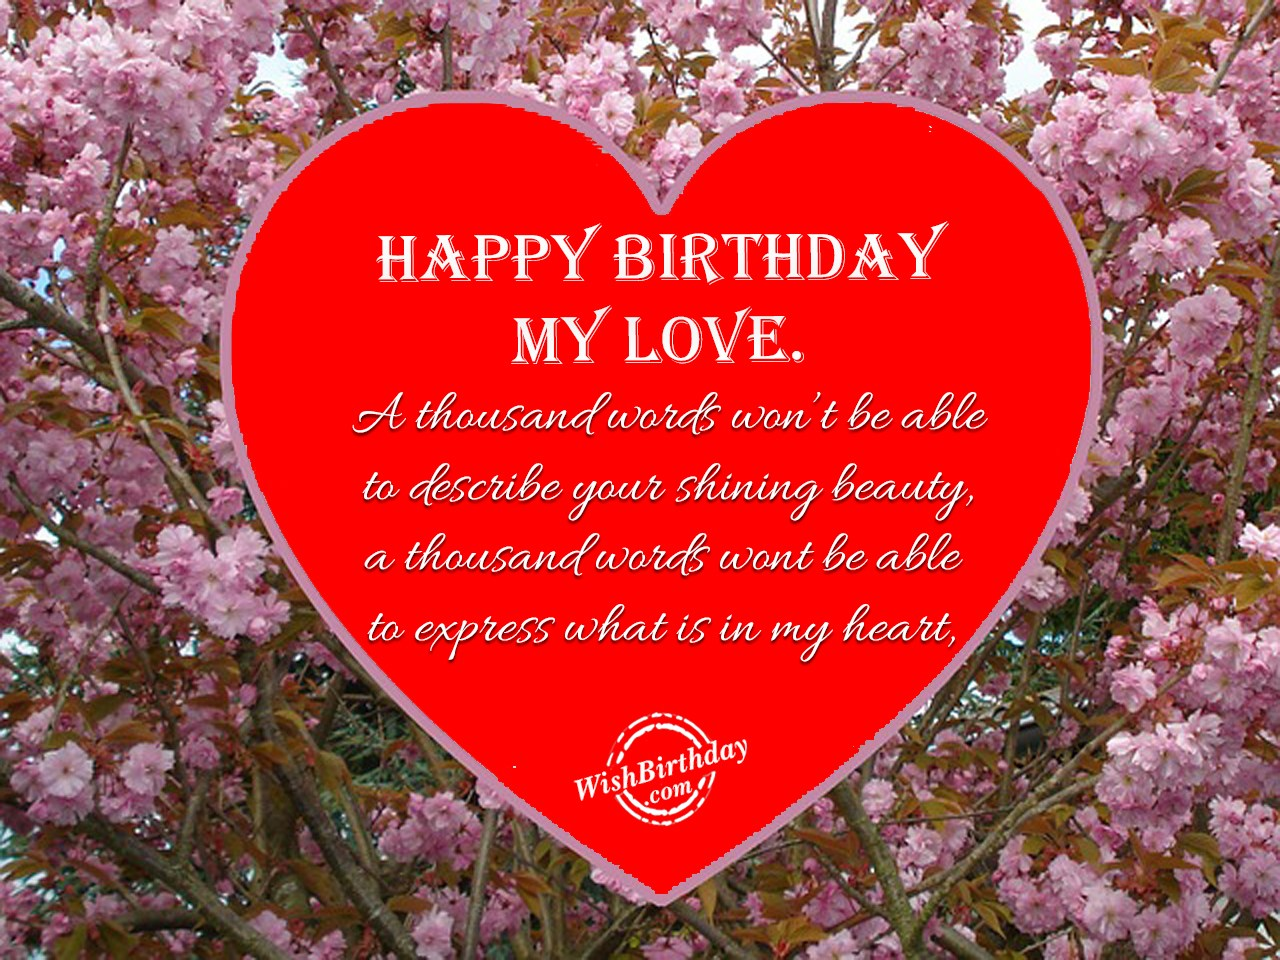 birthday message for wife funny ; funny%252Bbirthday%252Bwishes%252Bfor%252Bwife